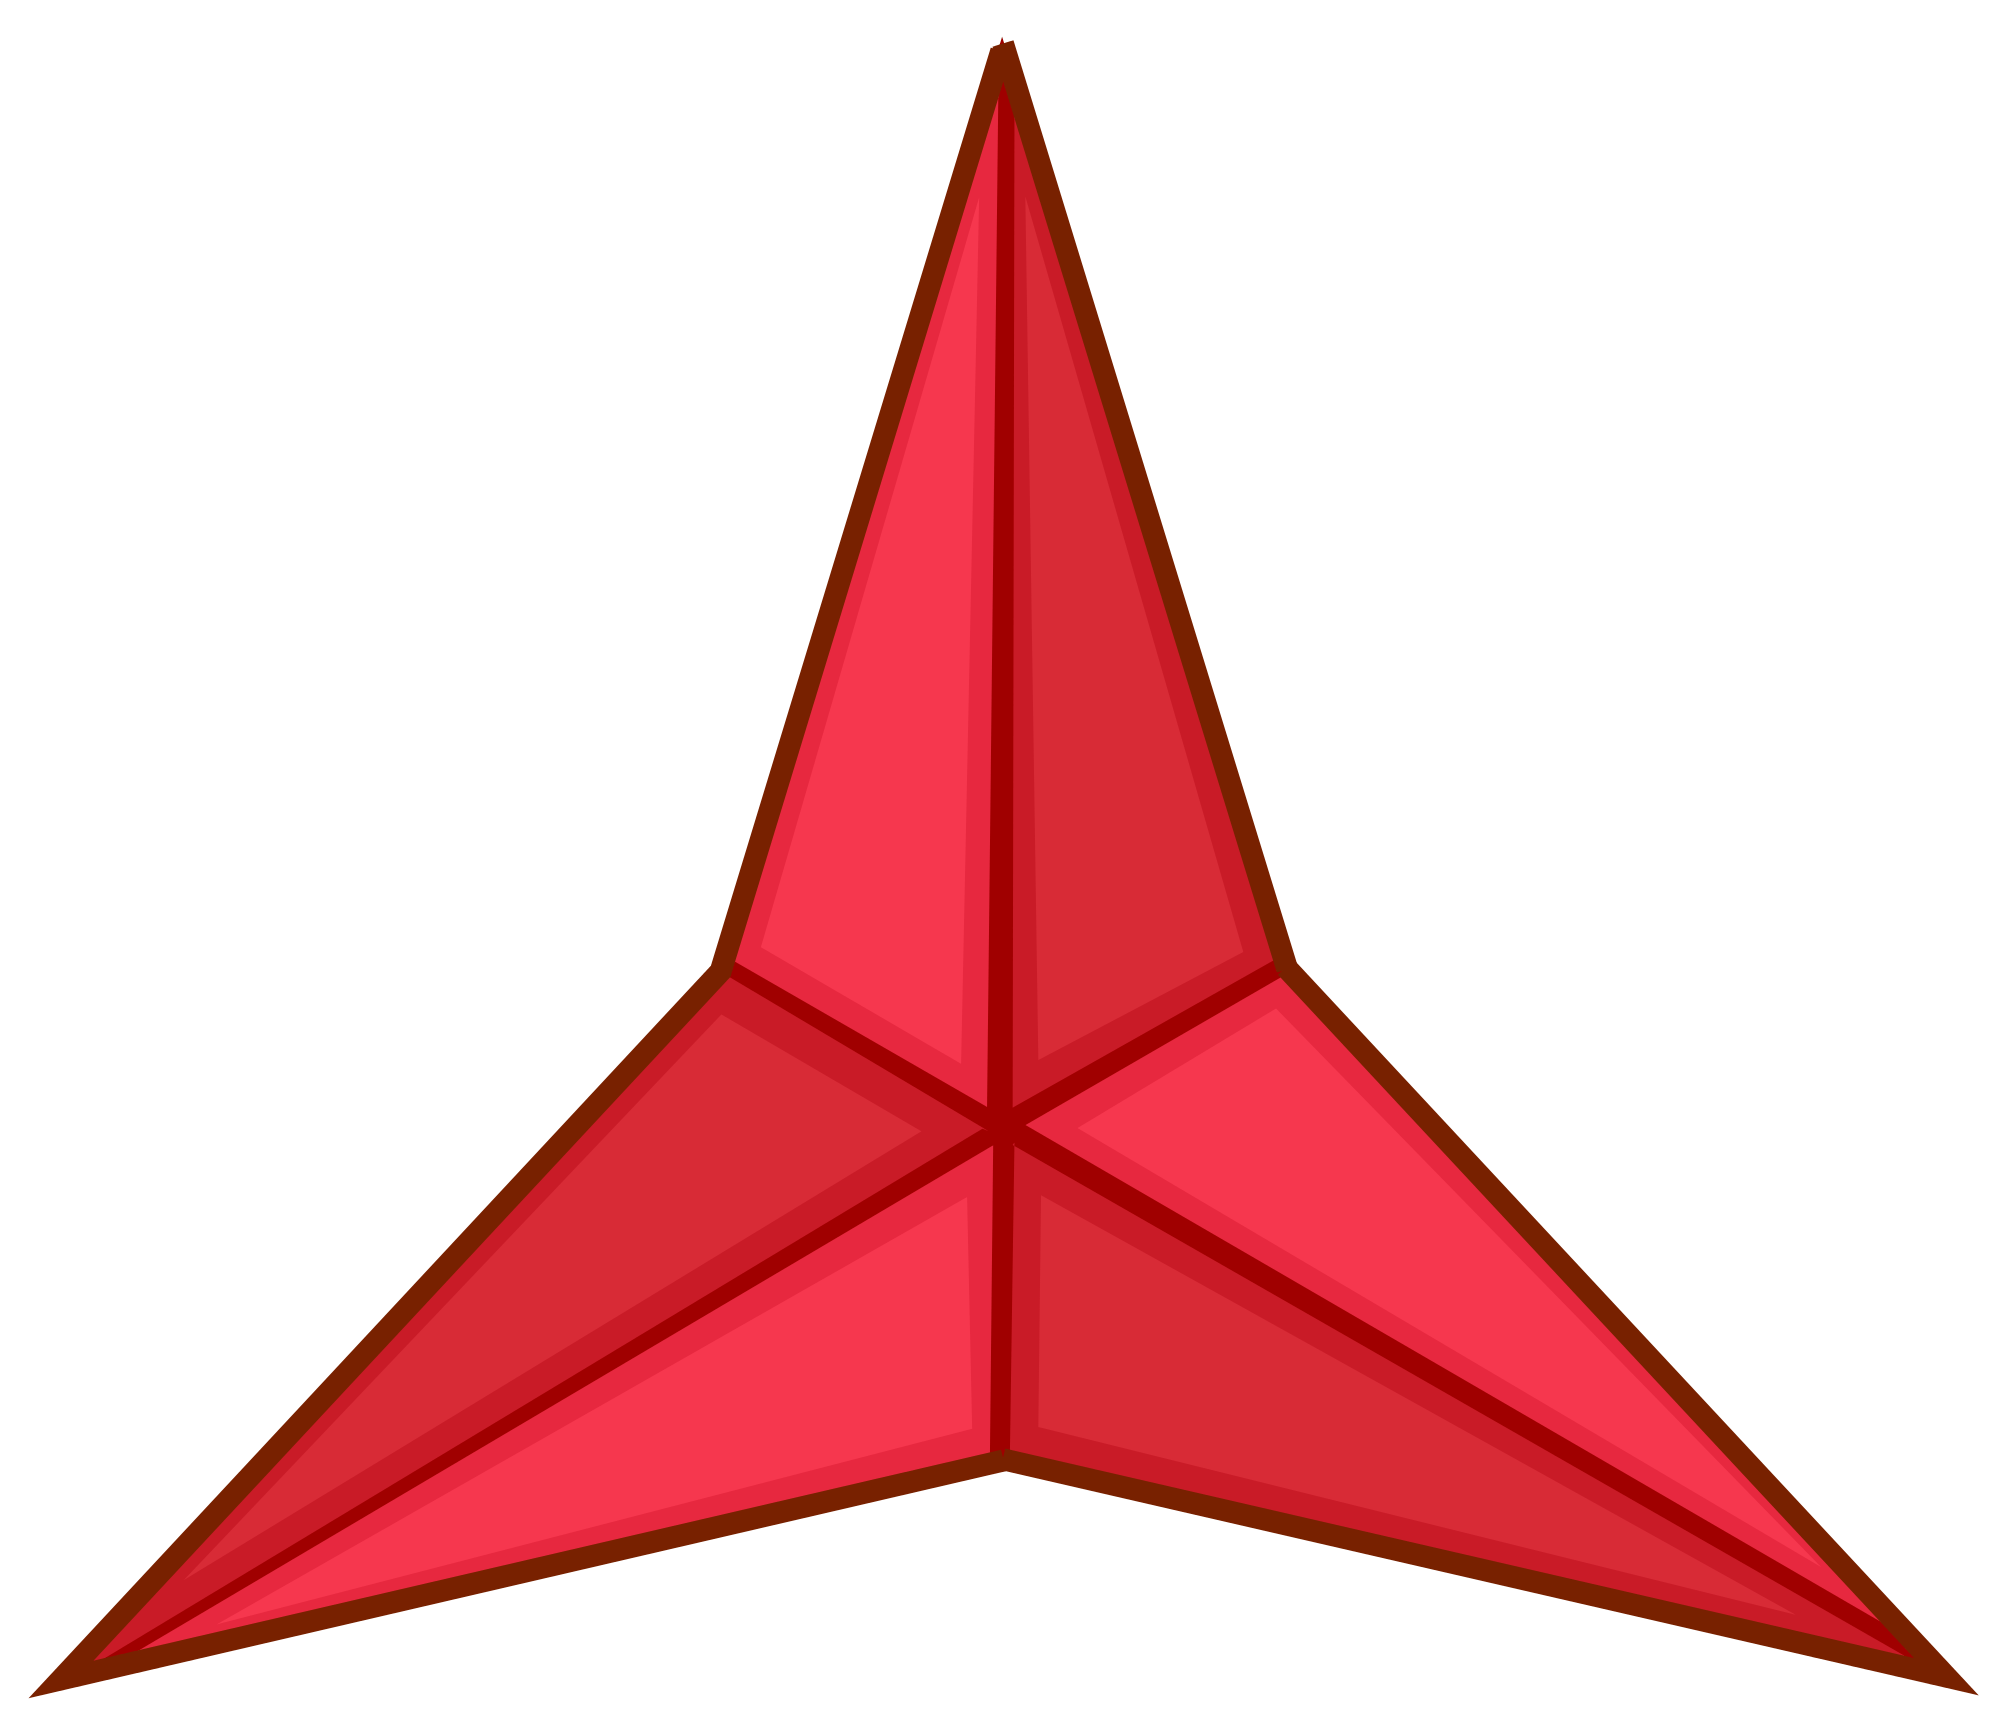 The Red Point Star Logo - Red three pointed star Logos